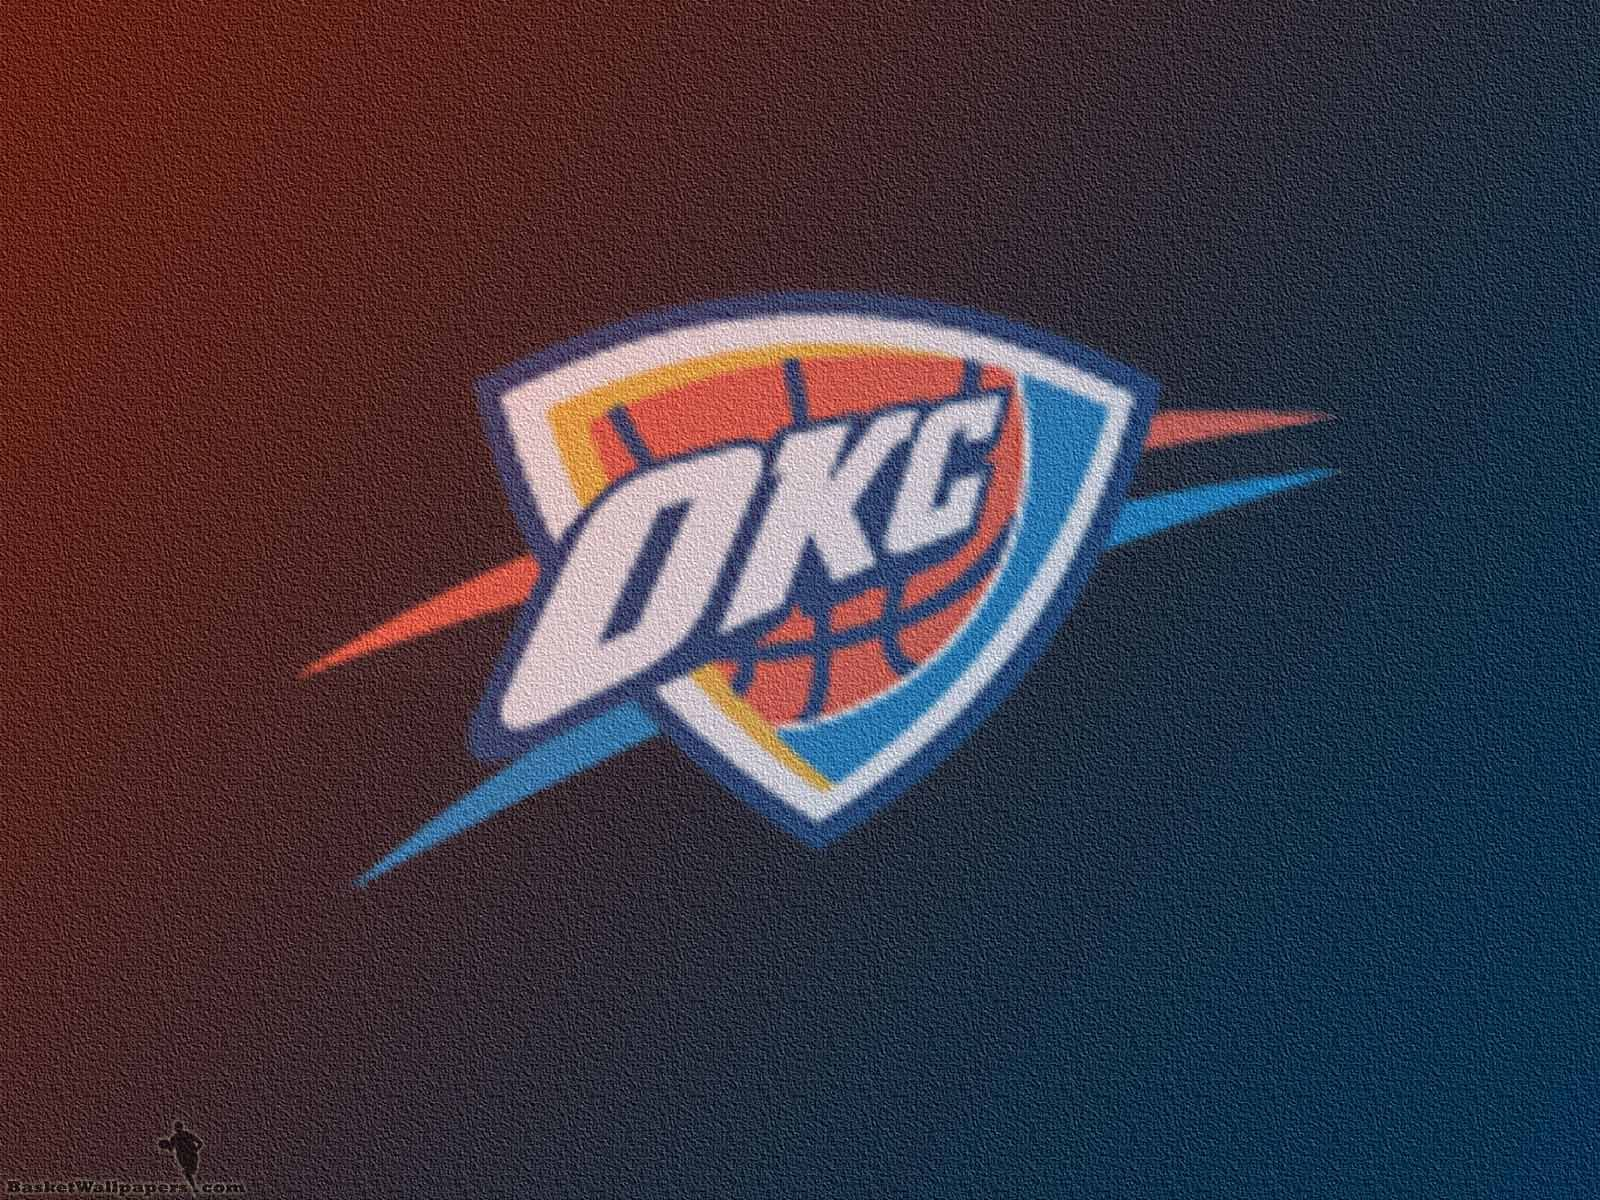 NBA Team Logos Wallpapers Wallpaper 1920x1200 Logo Backgrounds 49